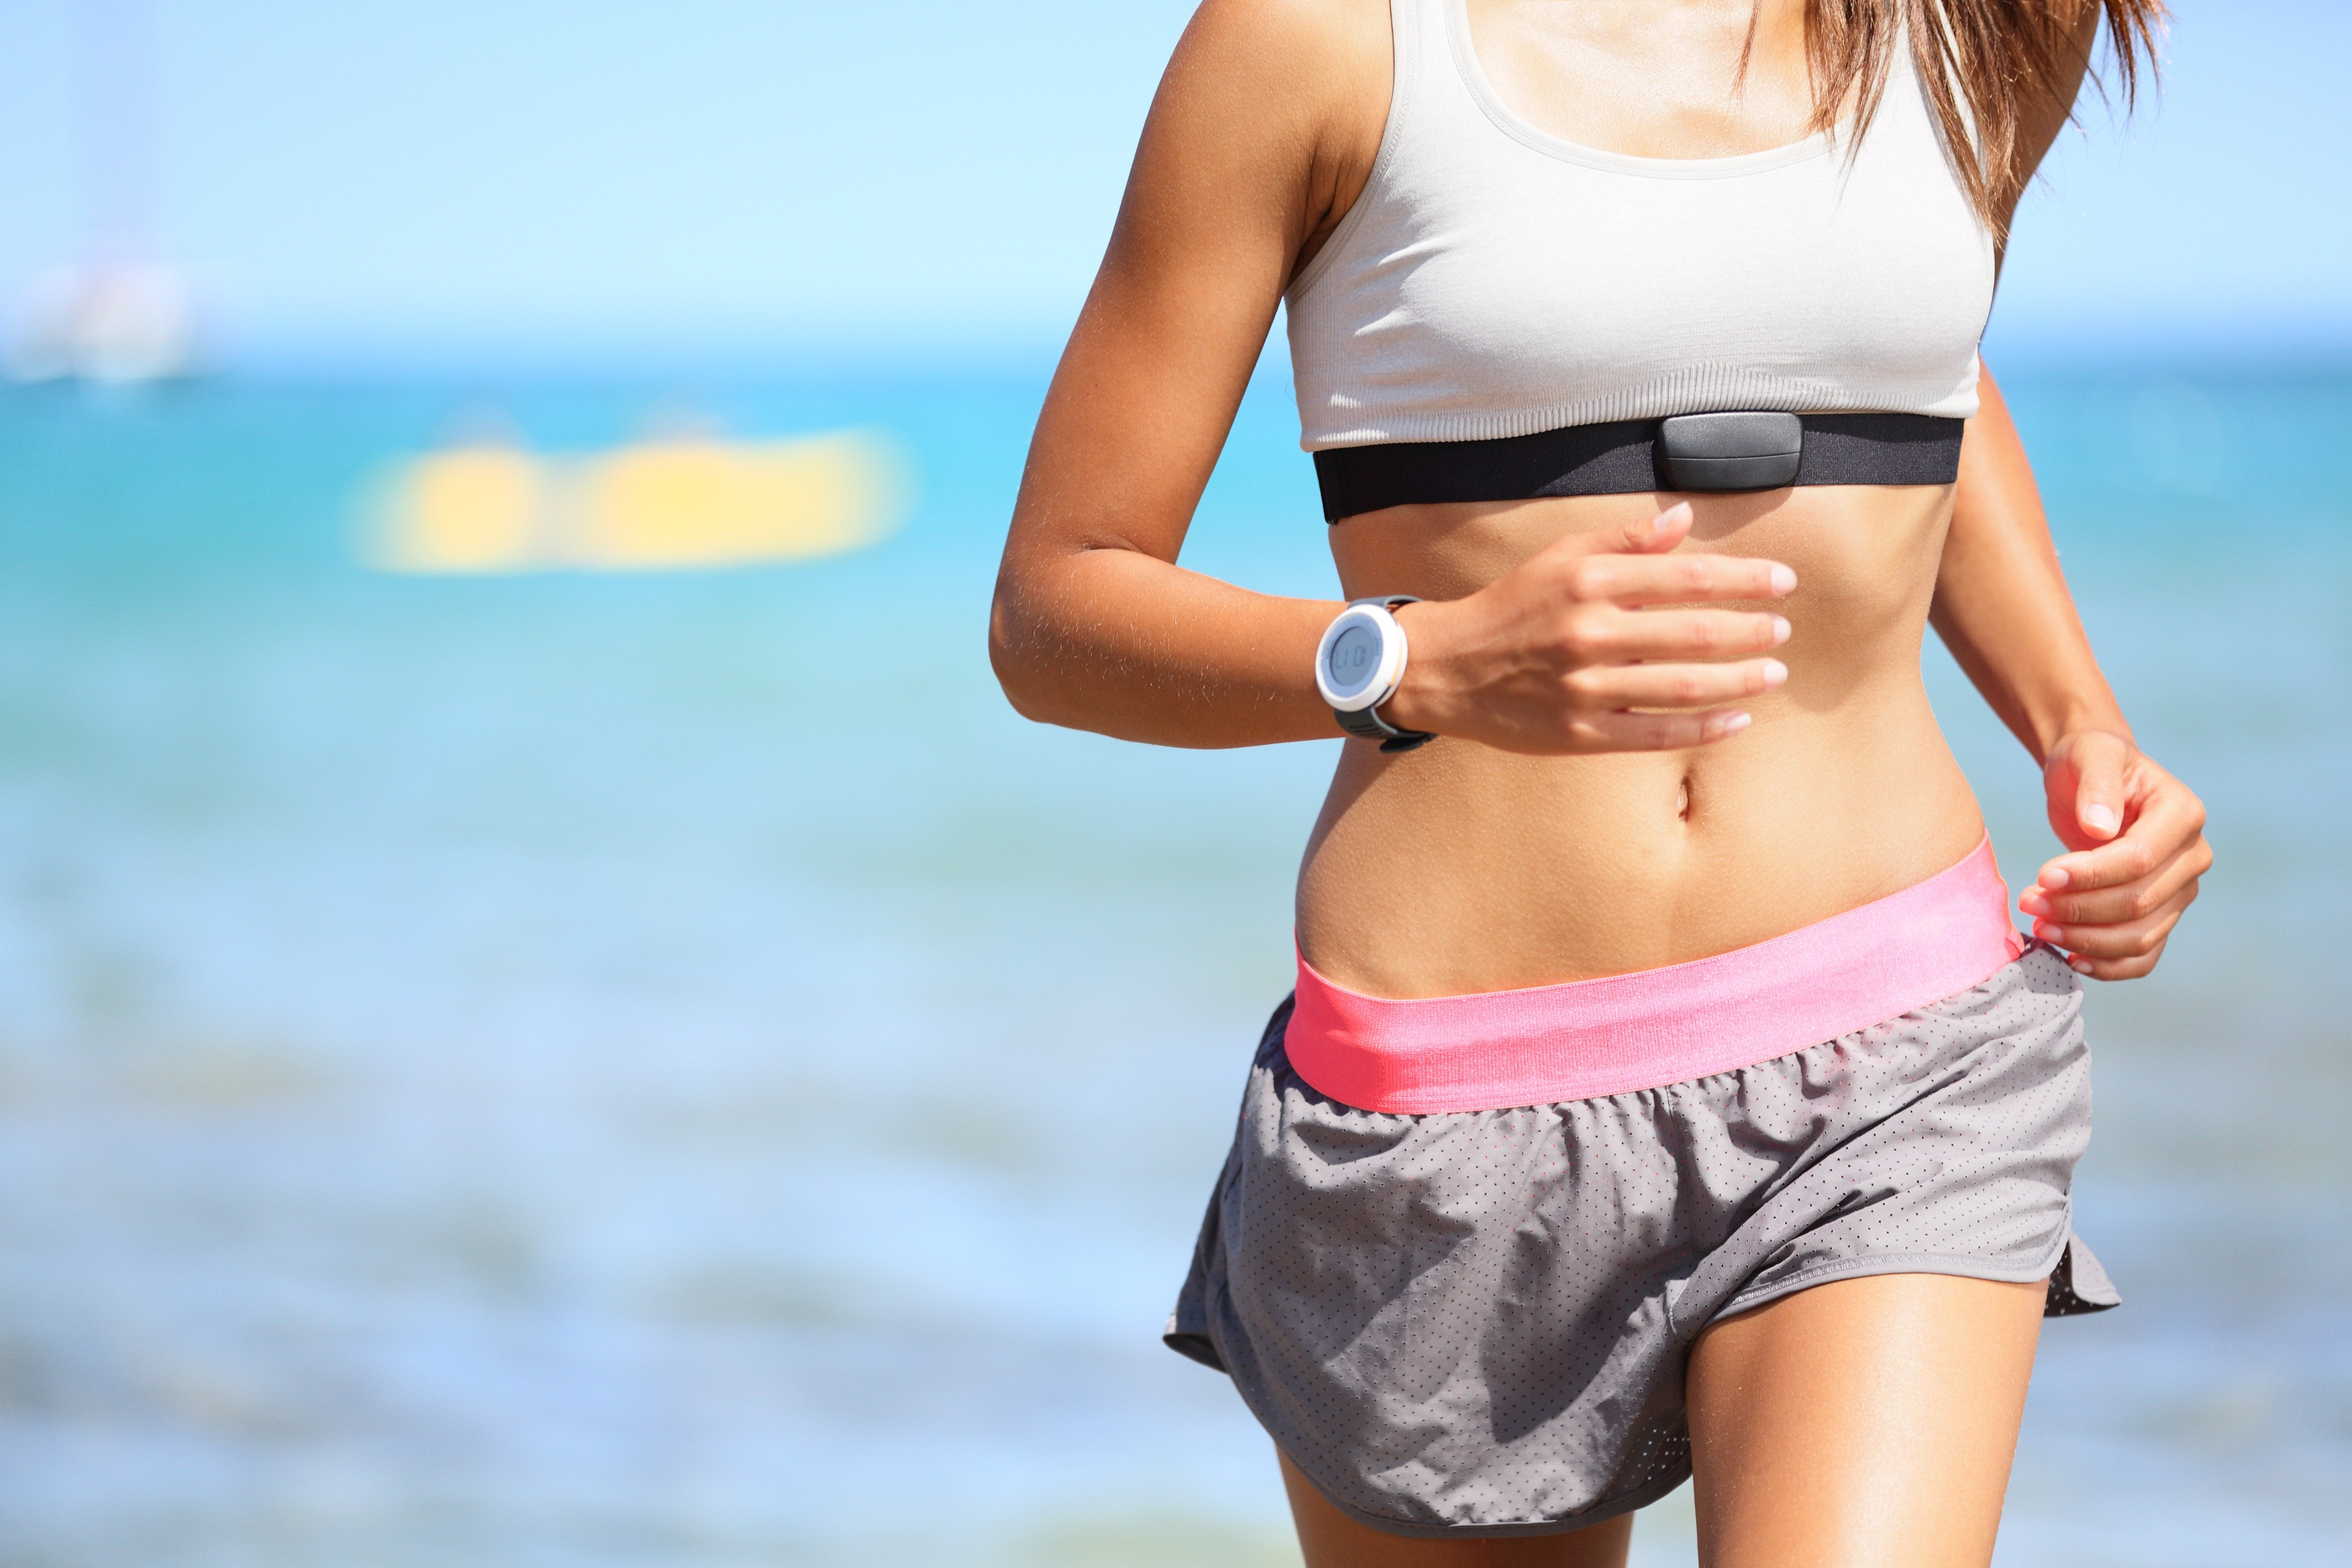 10 Benefits Of Running & How To Make It Interesting